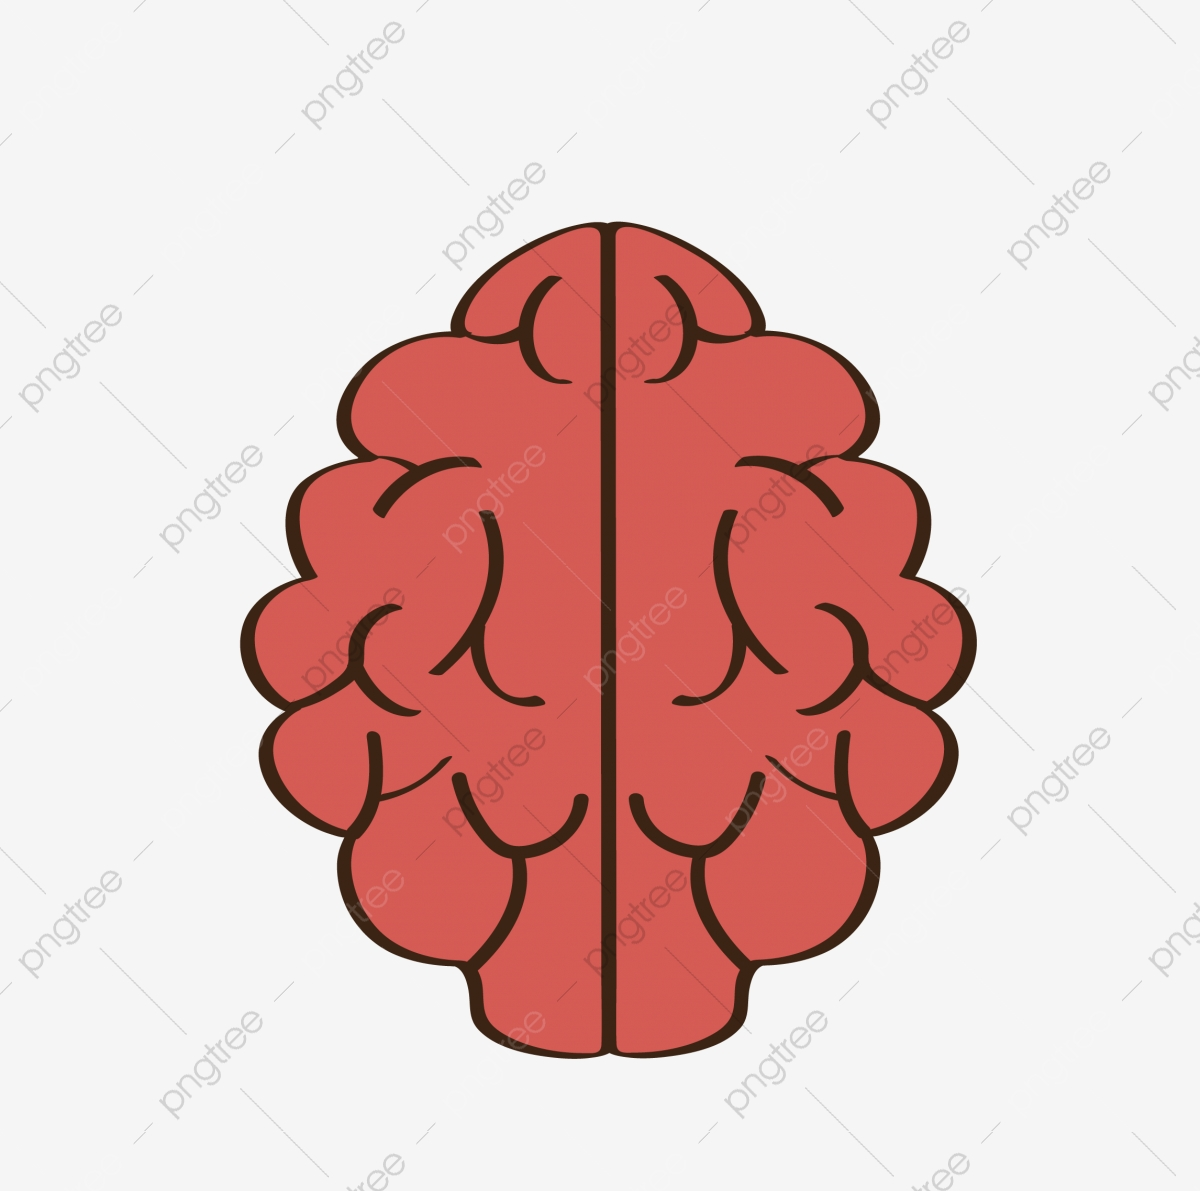 Creative Human Brain, Brain Clipart, Gear, Color PNG Transparent.